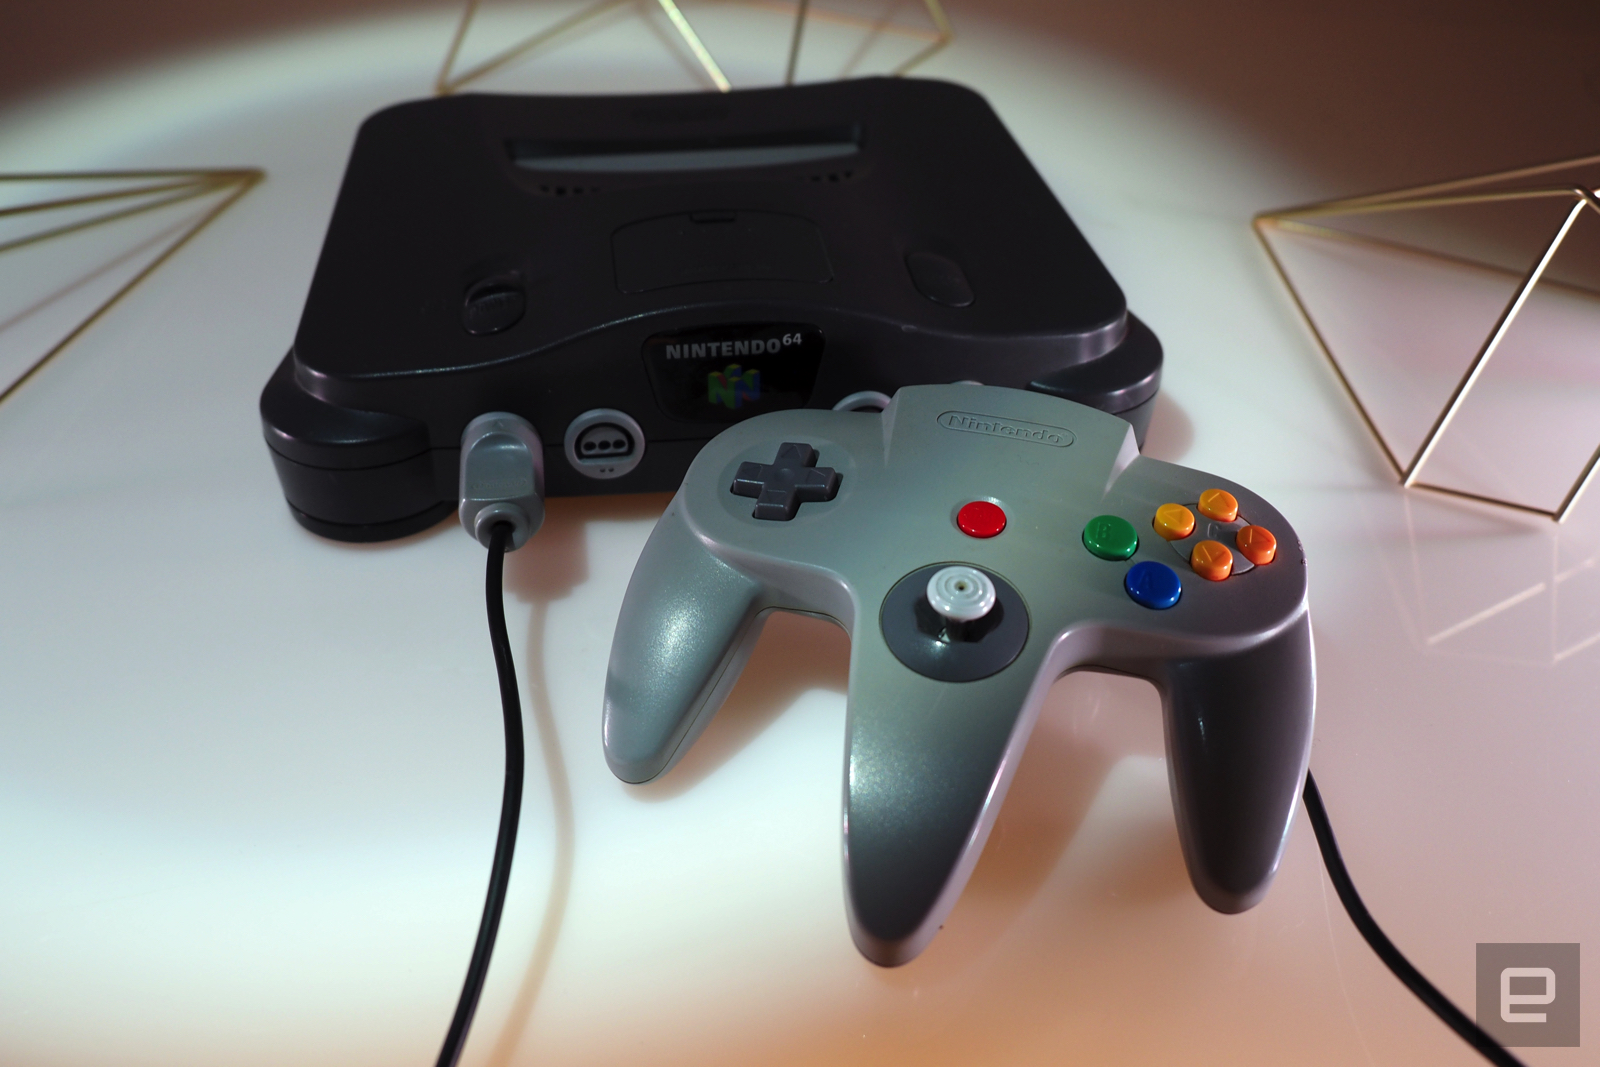 <p>Nintendo 64 on a white table with games</p>